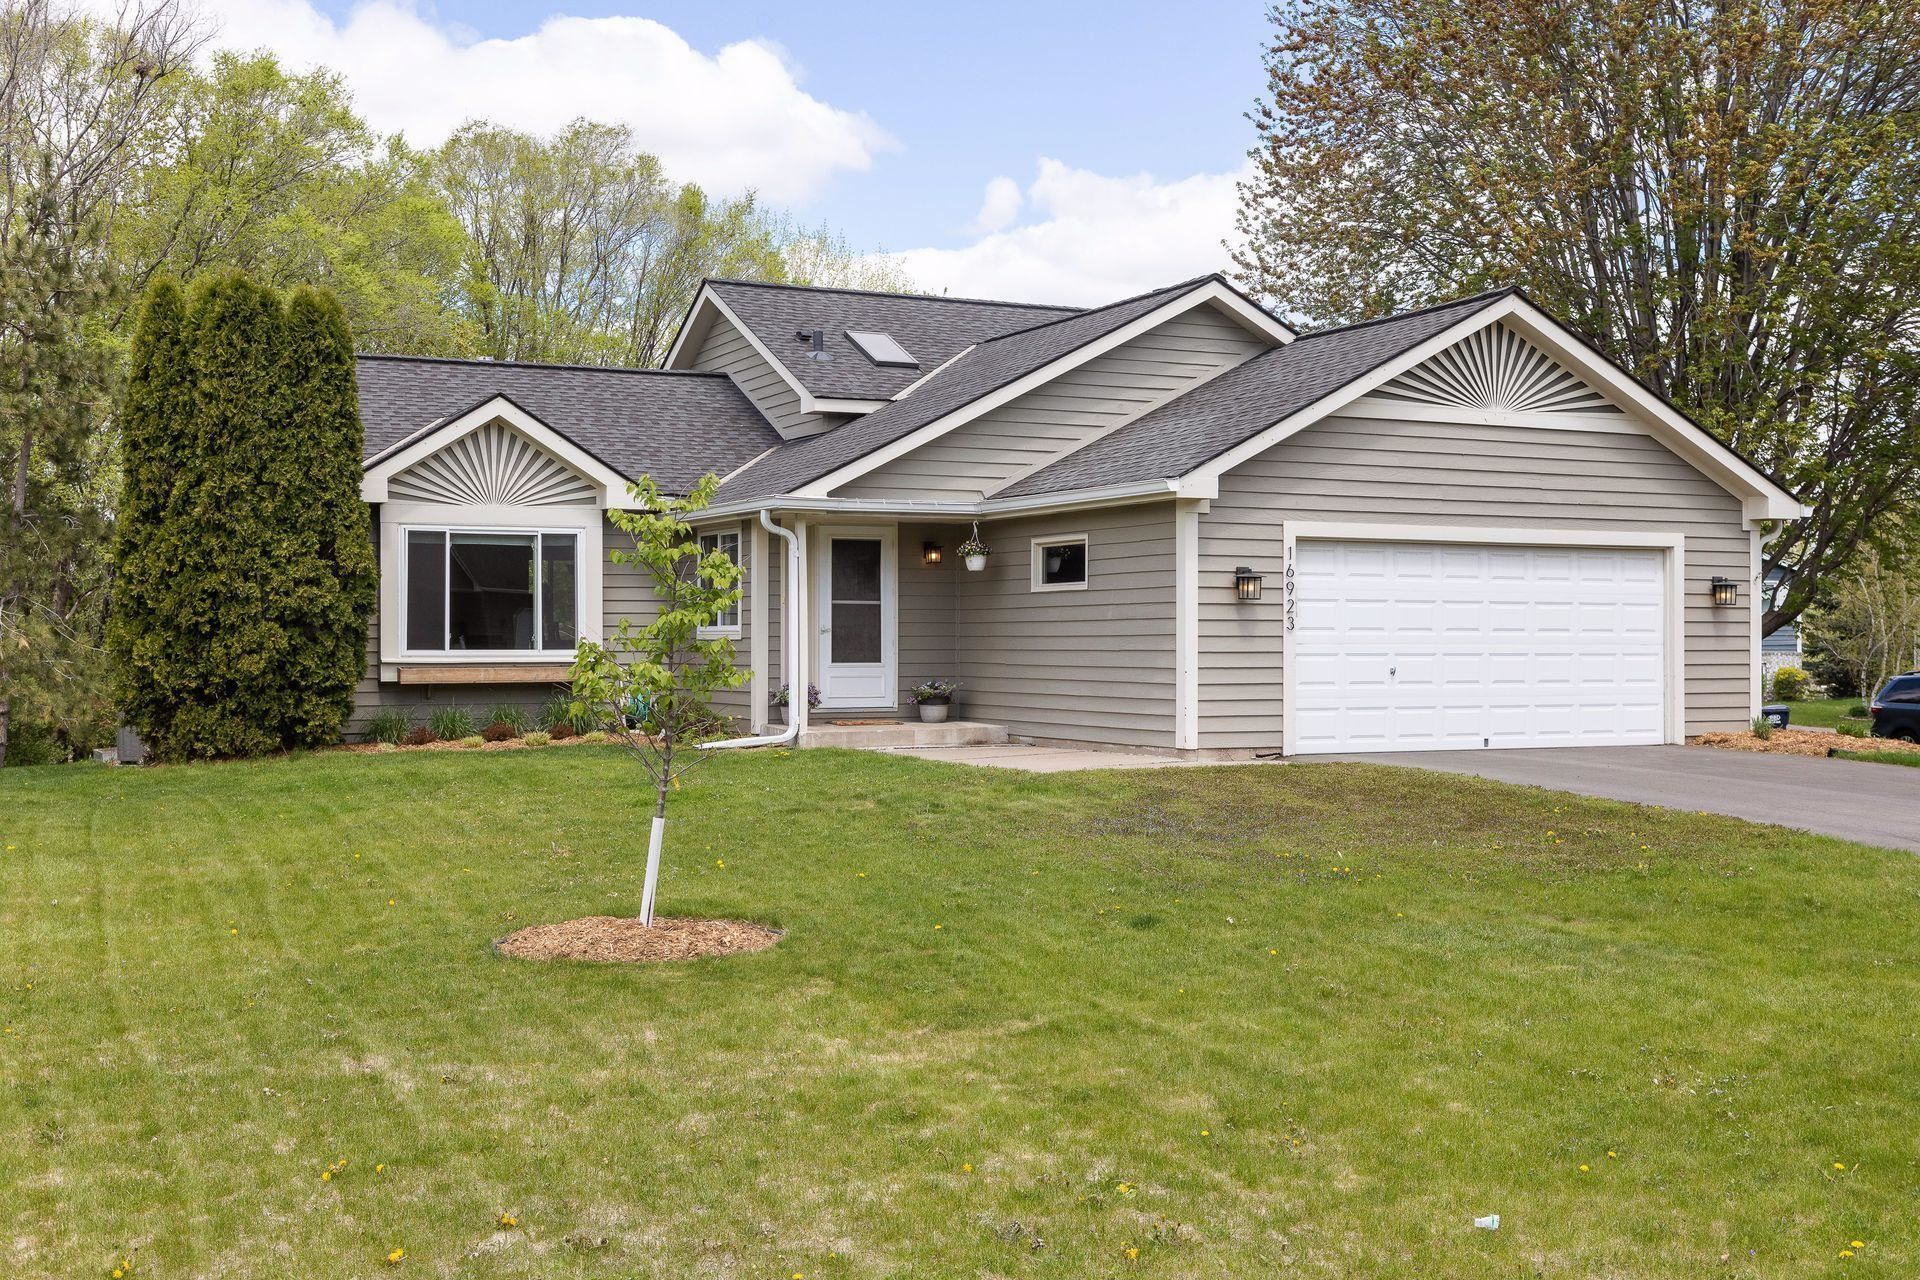 Photo of 16923 Jonquil Trail, Lakeville, MN 55044 (MLS # 5717839)